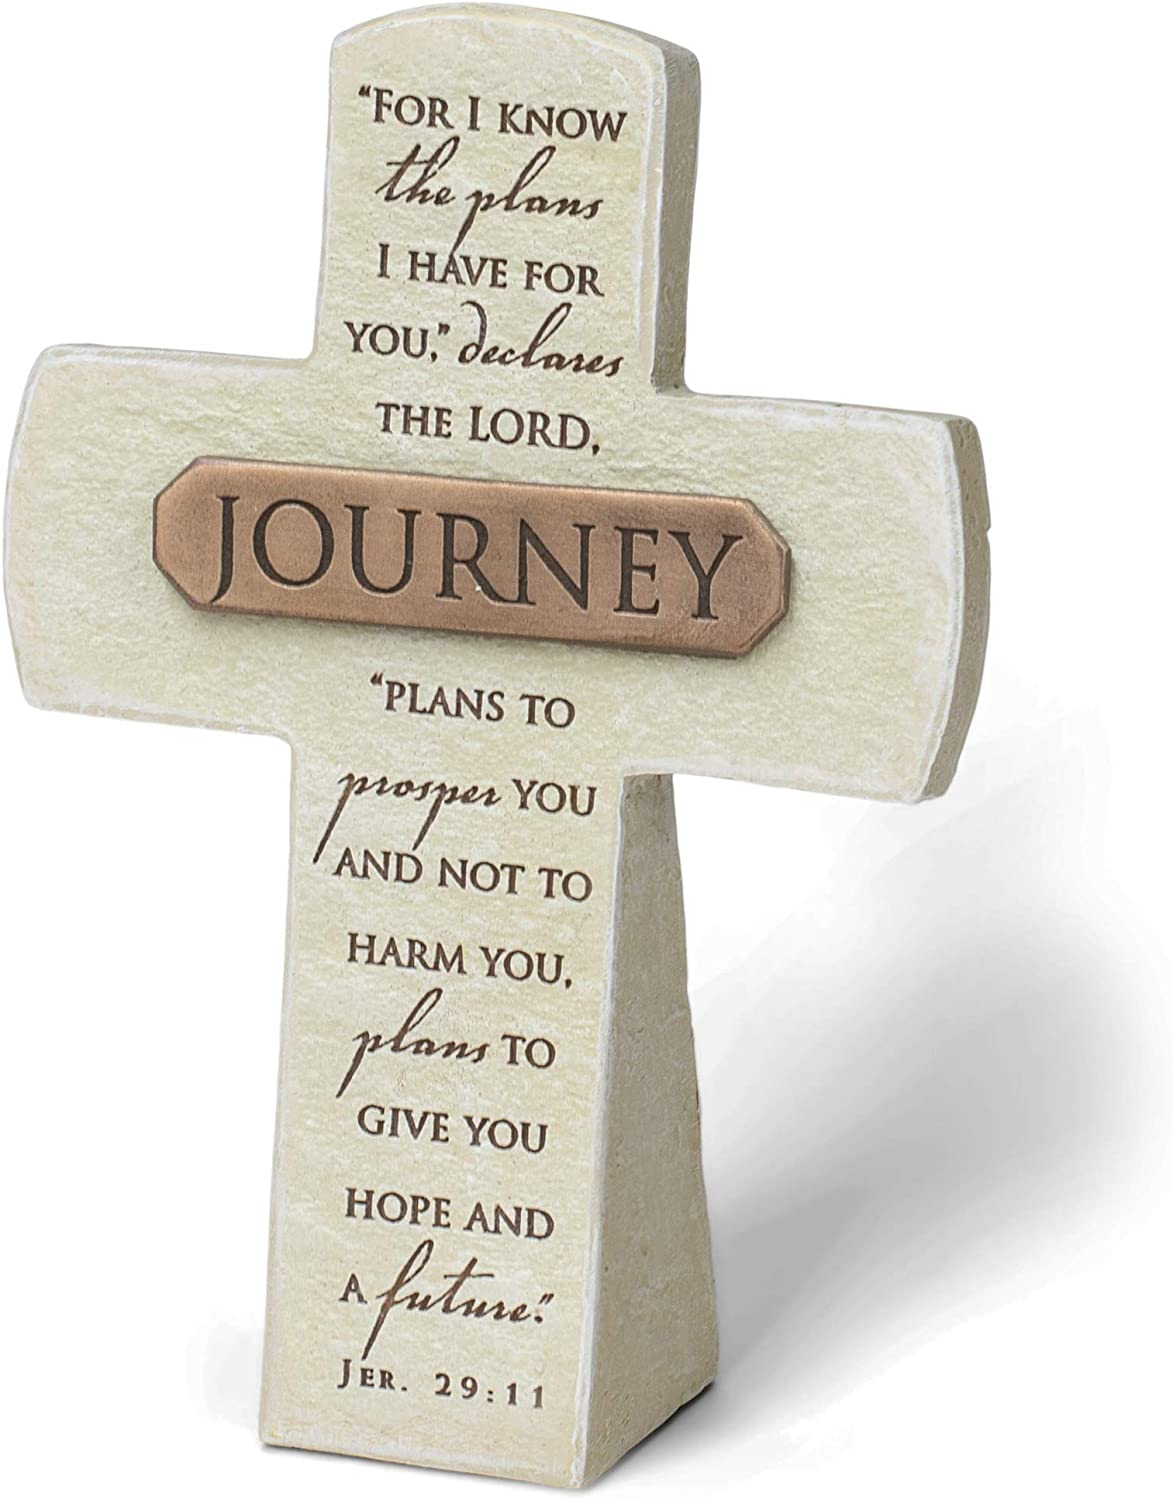 Lighthouse Christian Products Journey Plans for You Sandstone 5.5 Inch Cast Stone Bronze Title Bar Cross Figurine